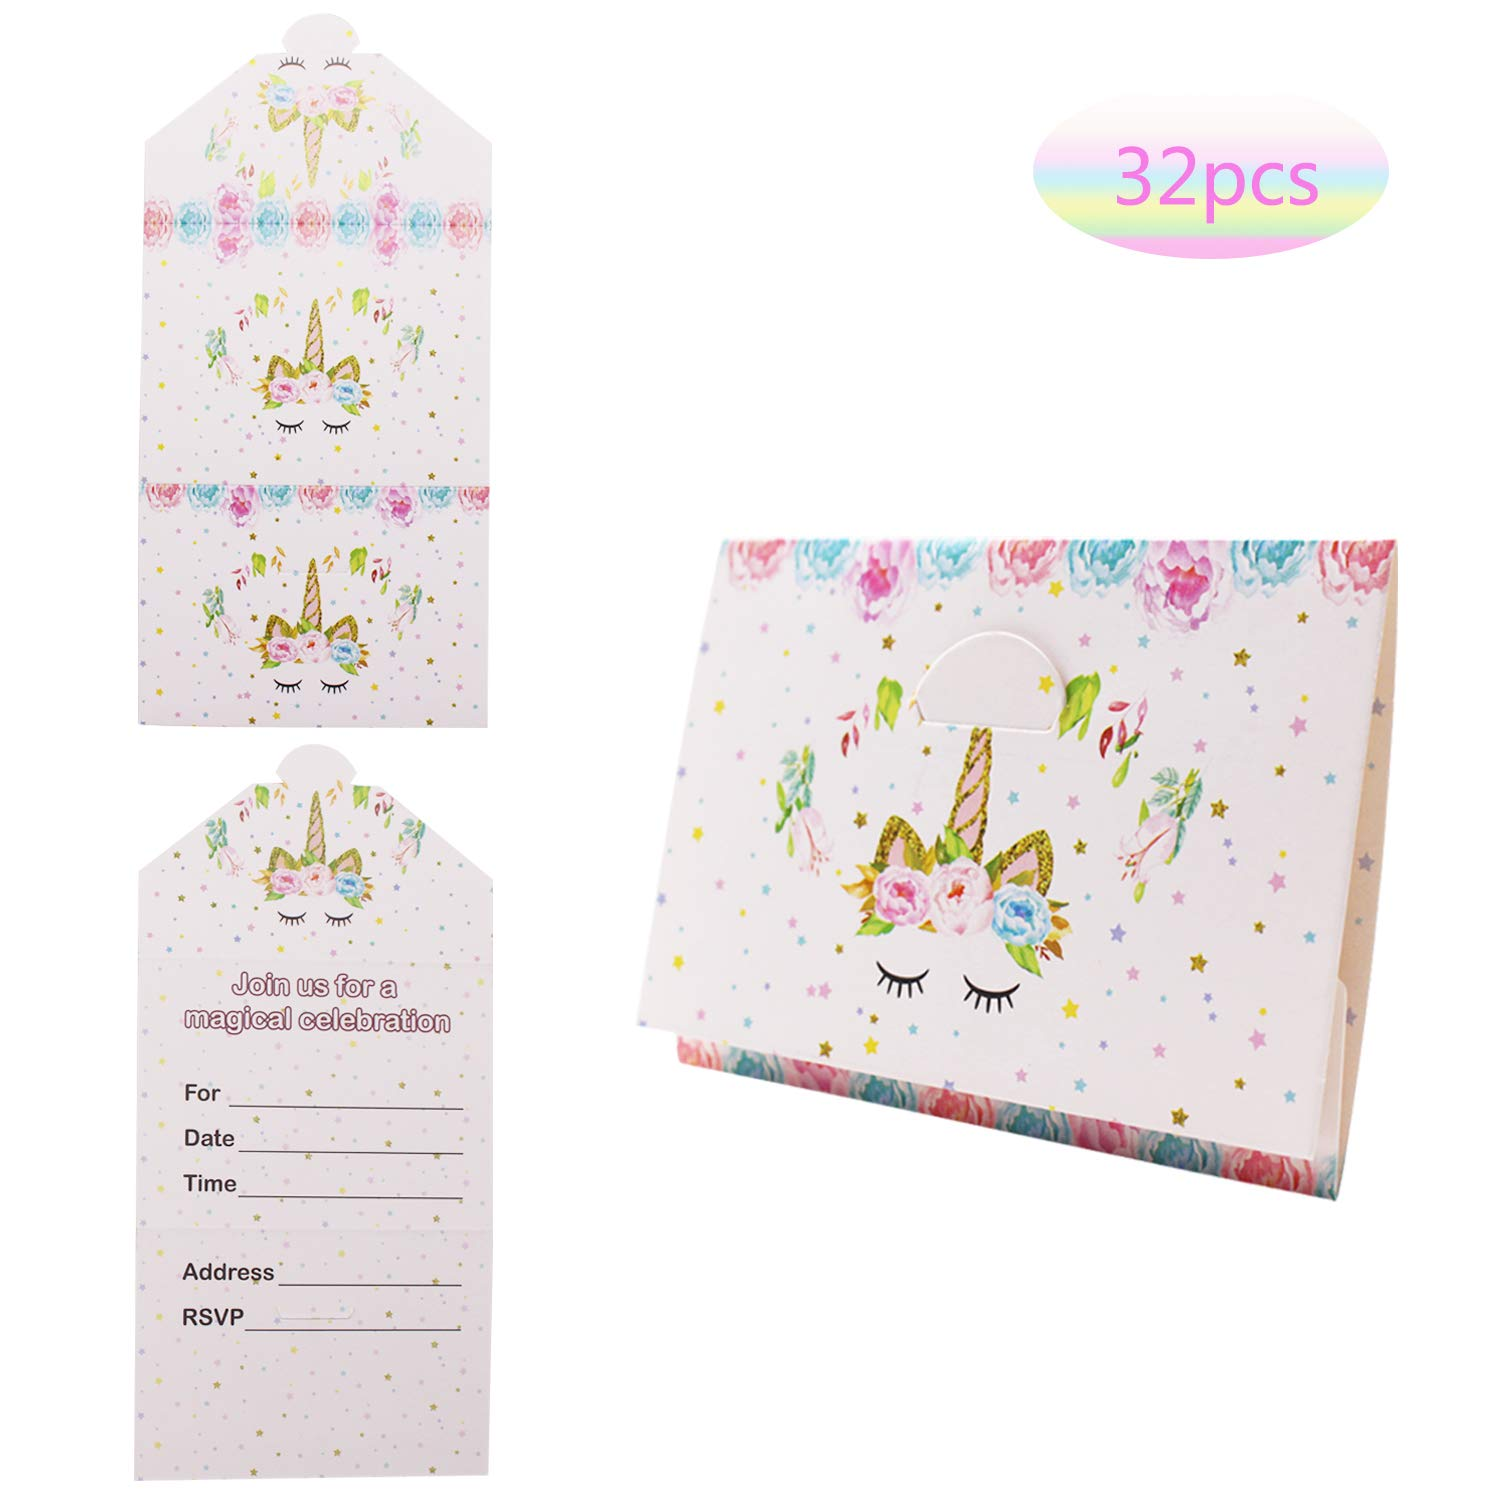 Unicorn Girls Party Invitations Pack 32 Pink and Gold Envelopes Style Ready to Write,Glitter Unicorn Birthday Party Invitation Cards for Kids Birthday Unicorn Party Supplies